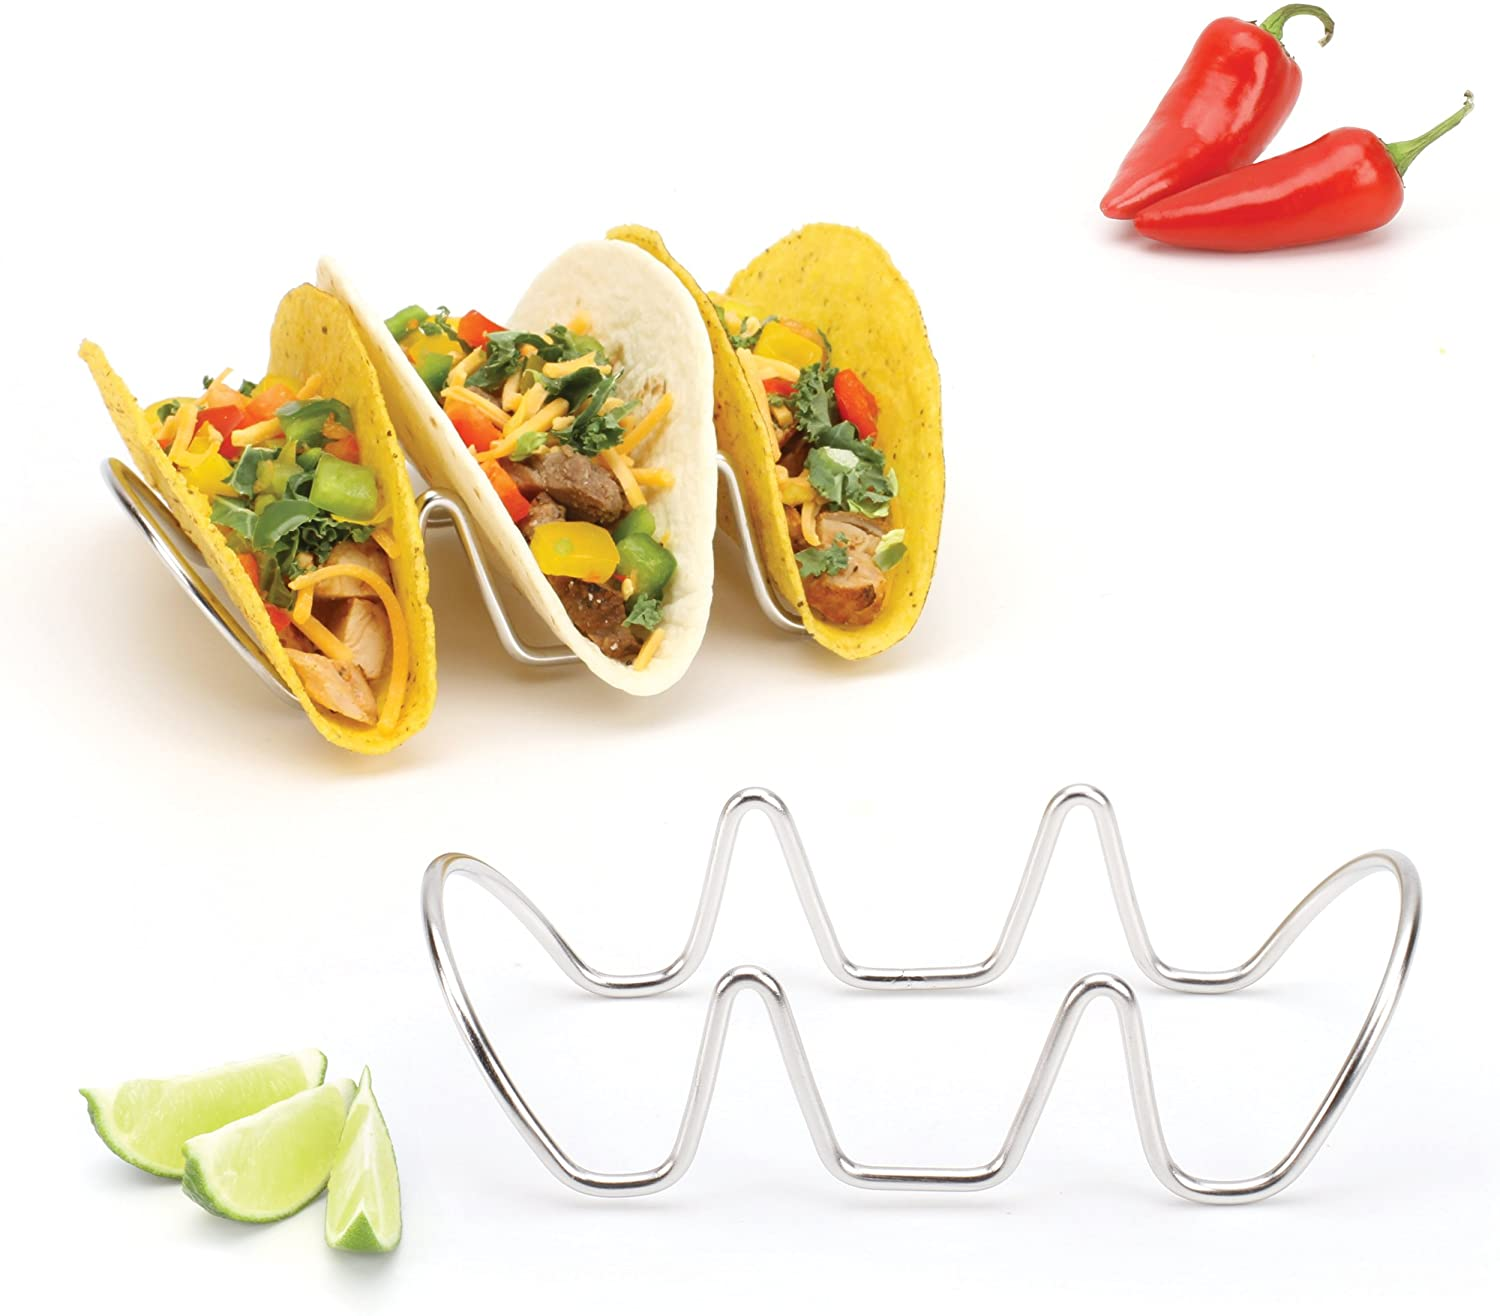 Taco Holders Set of 2 Premium Stainless Steel Stackable Stands, Each Rack Holds 3 Hard or Soft Tacos, Five Styles Available By 2lbDepot